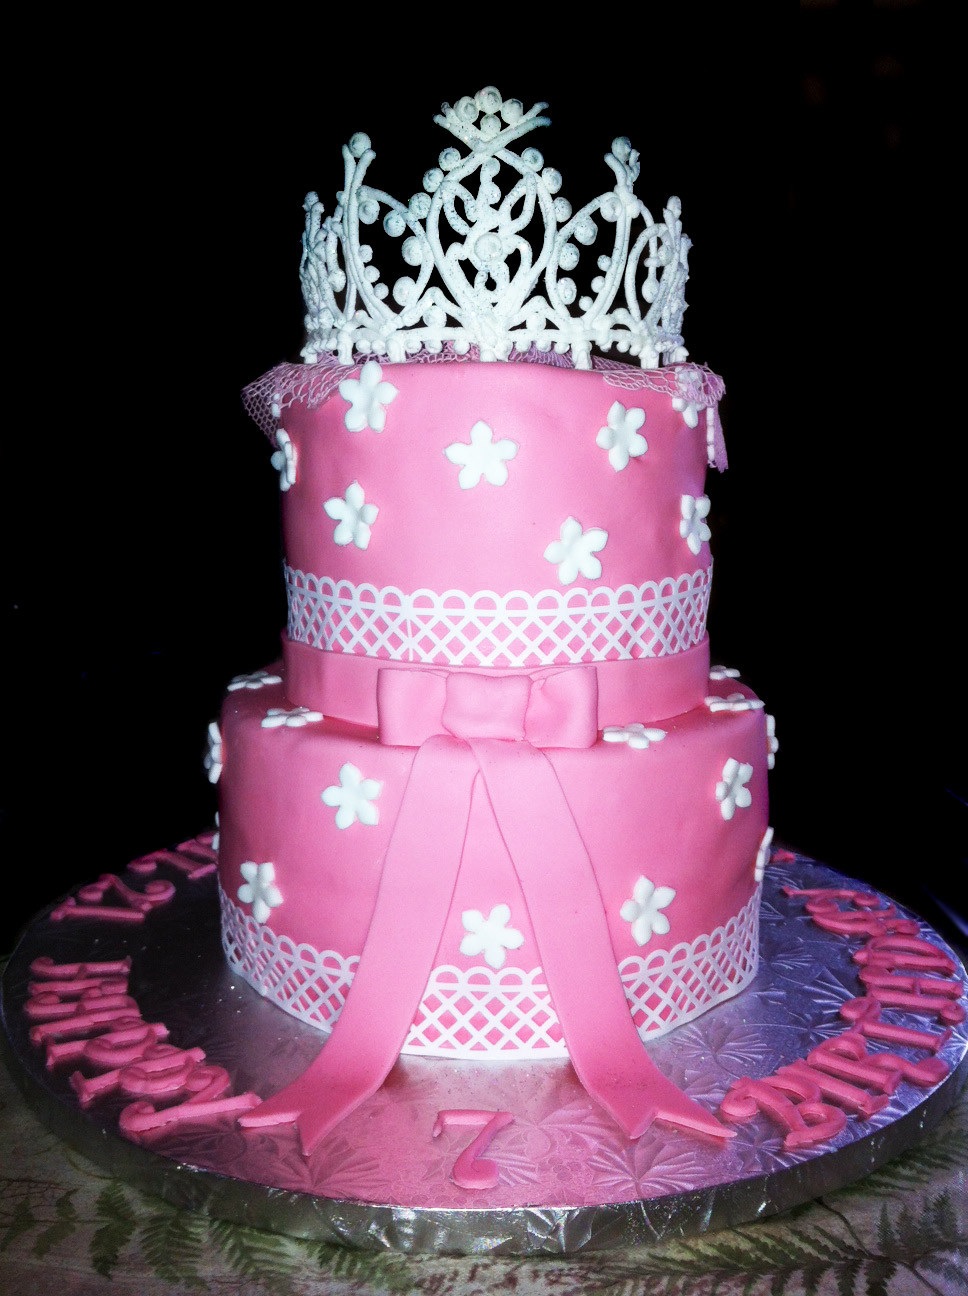 Best ideas about Picture Of A Birthday Cake . Save or Pin Birthday Cakes Now.